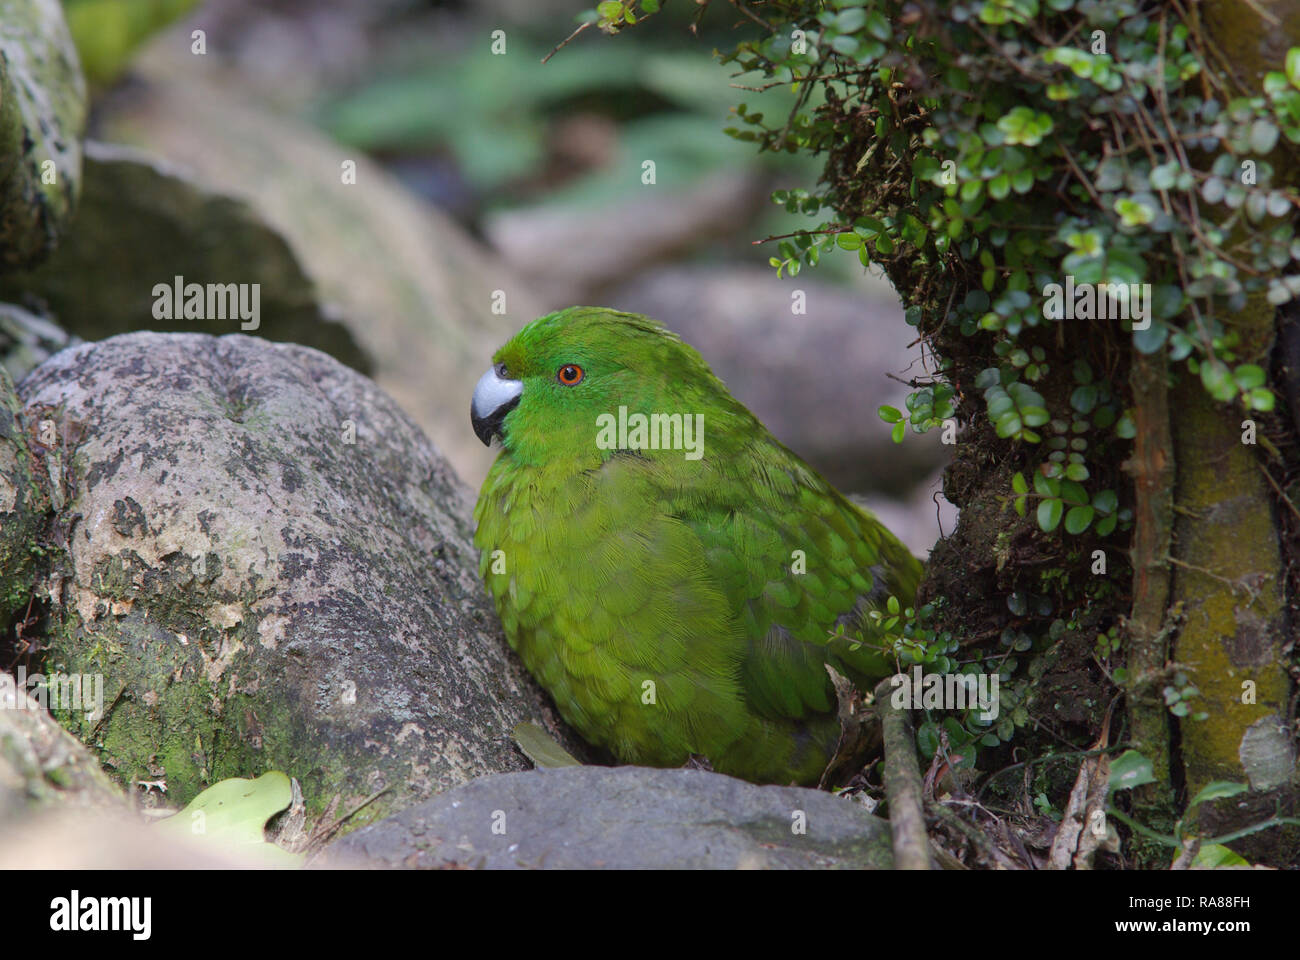 L'île des antipodes, parakeet Cyanoramphus unicolor Photo Stock